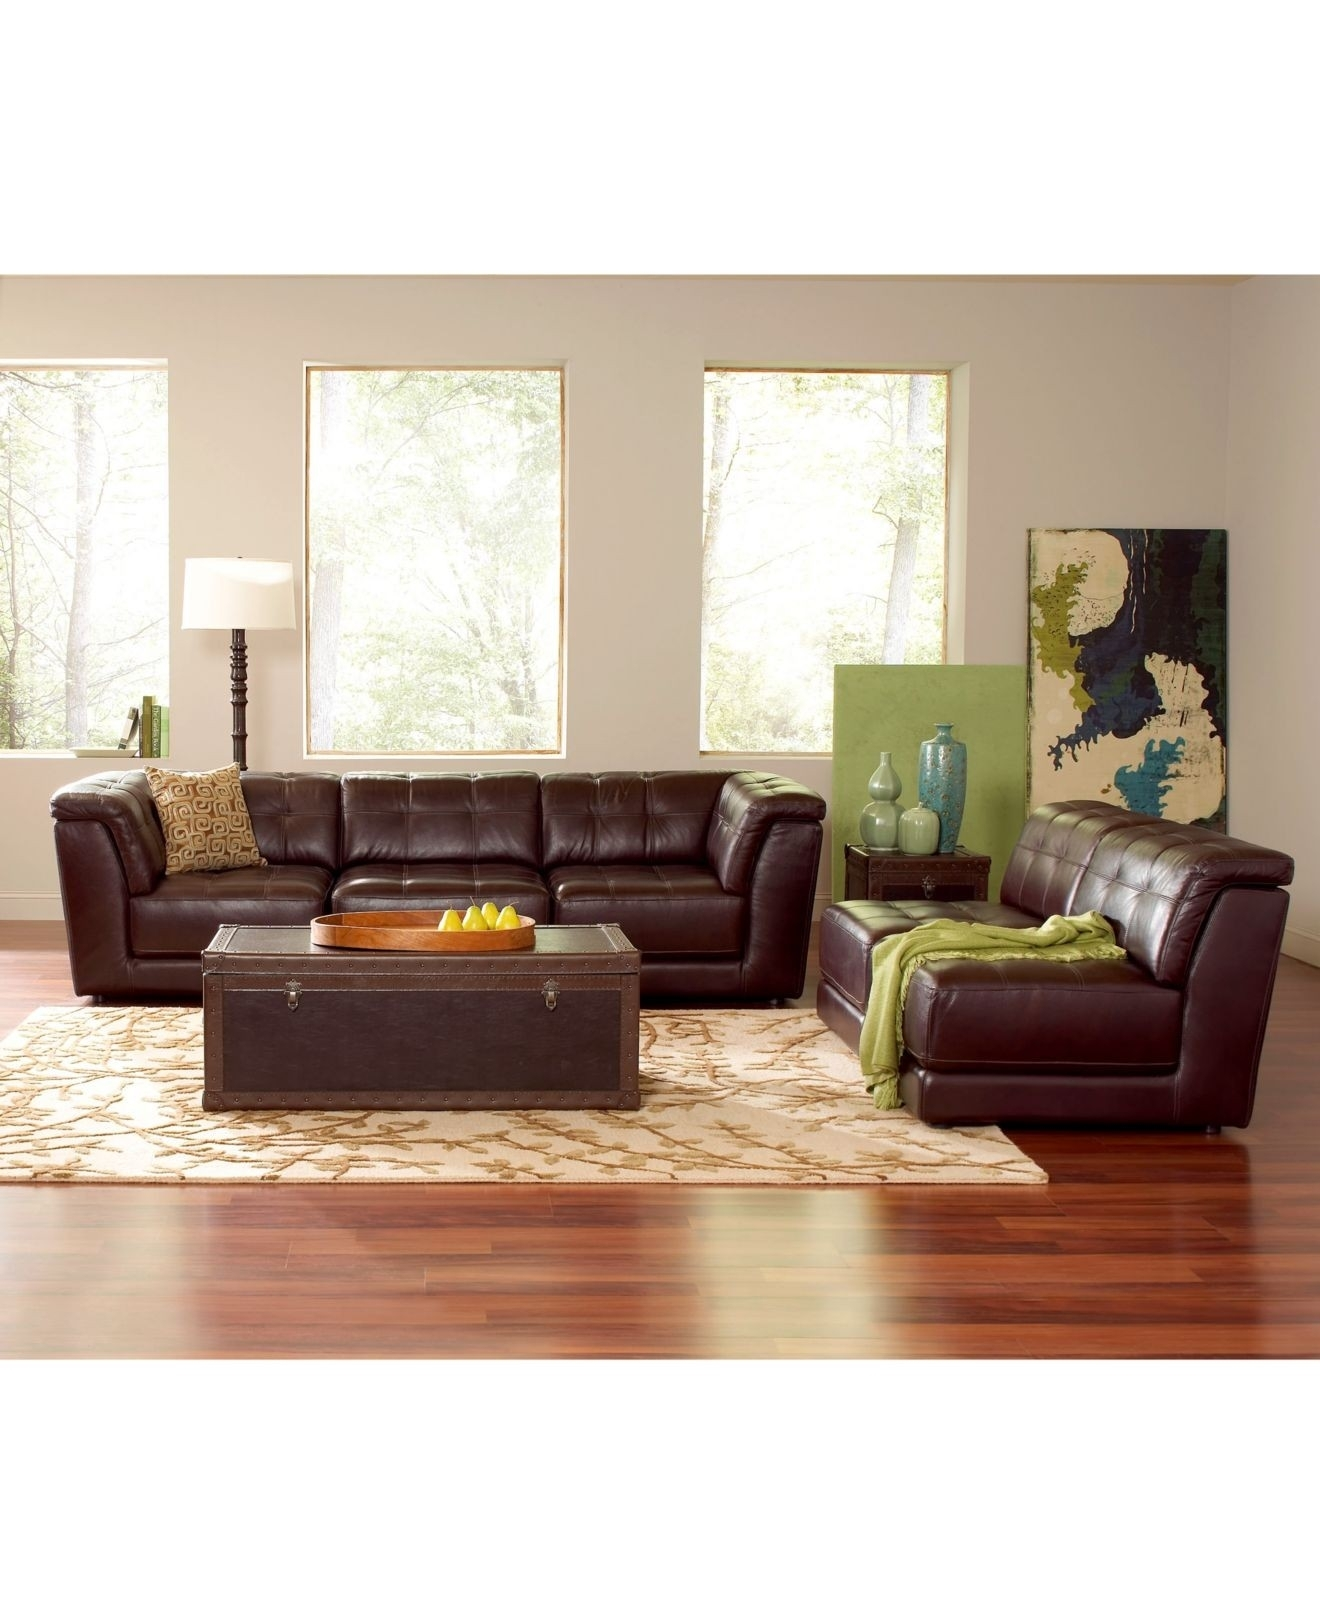 New Sectional Sofa Tampa – Buildsimplehome Intended For Tampa Sectional Sofas (View 6 of 10)